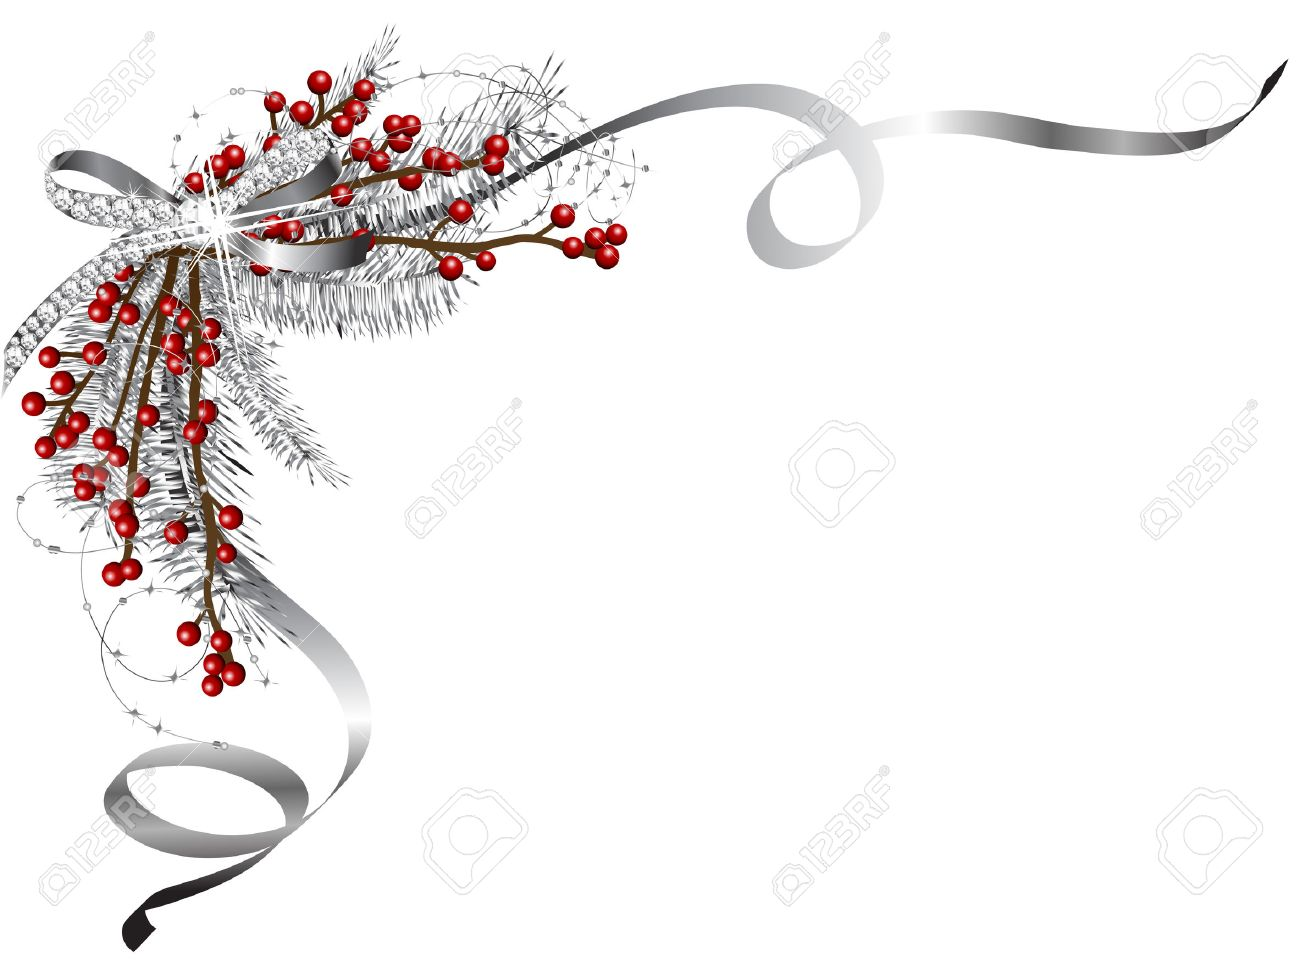 Christmas Garland Vector. Winter Holidays Vector Clip Art On.. Royalty Free  Cliparts, Vectors, And Stock Illustration. Image 65359570.